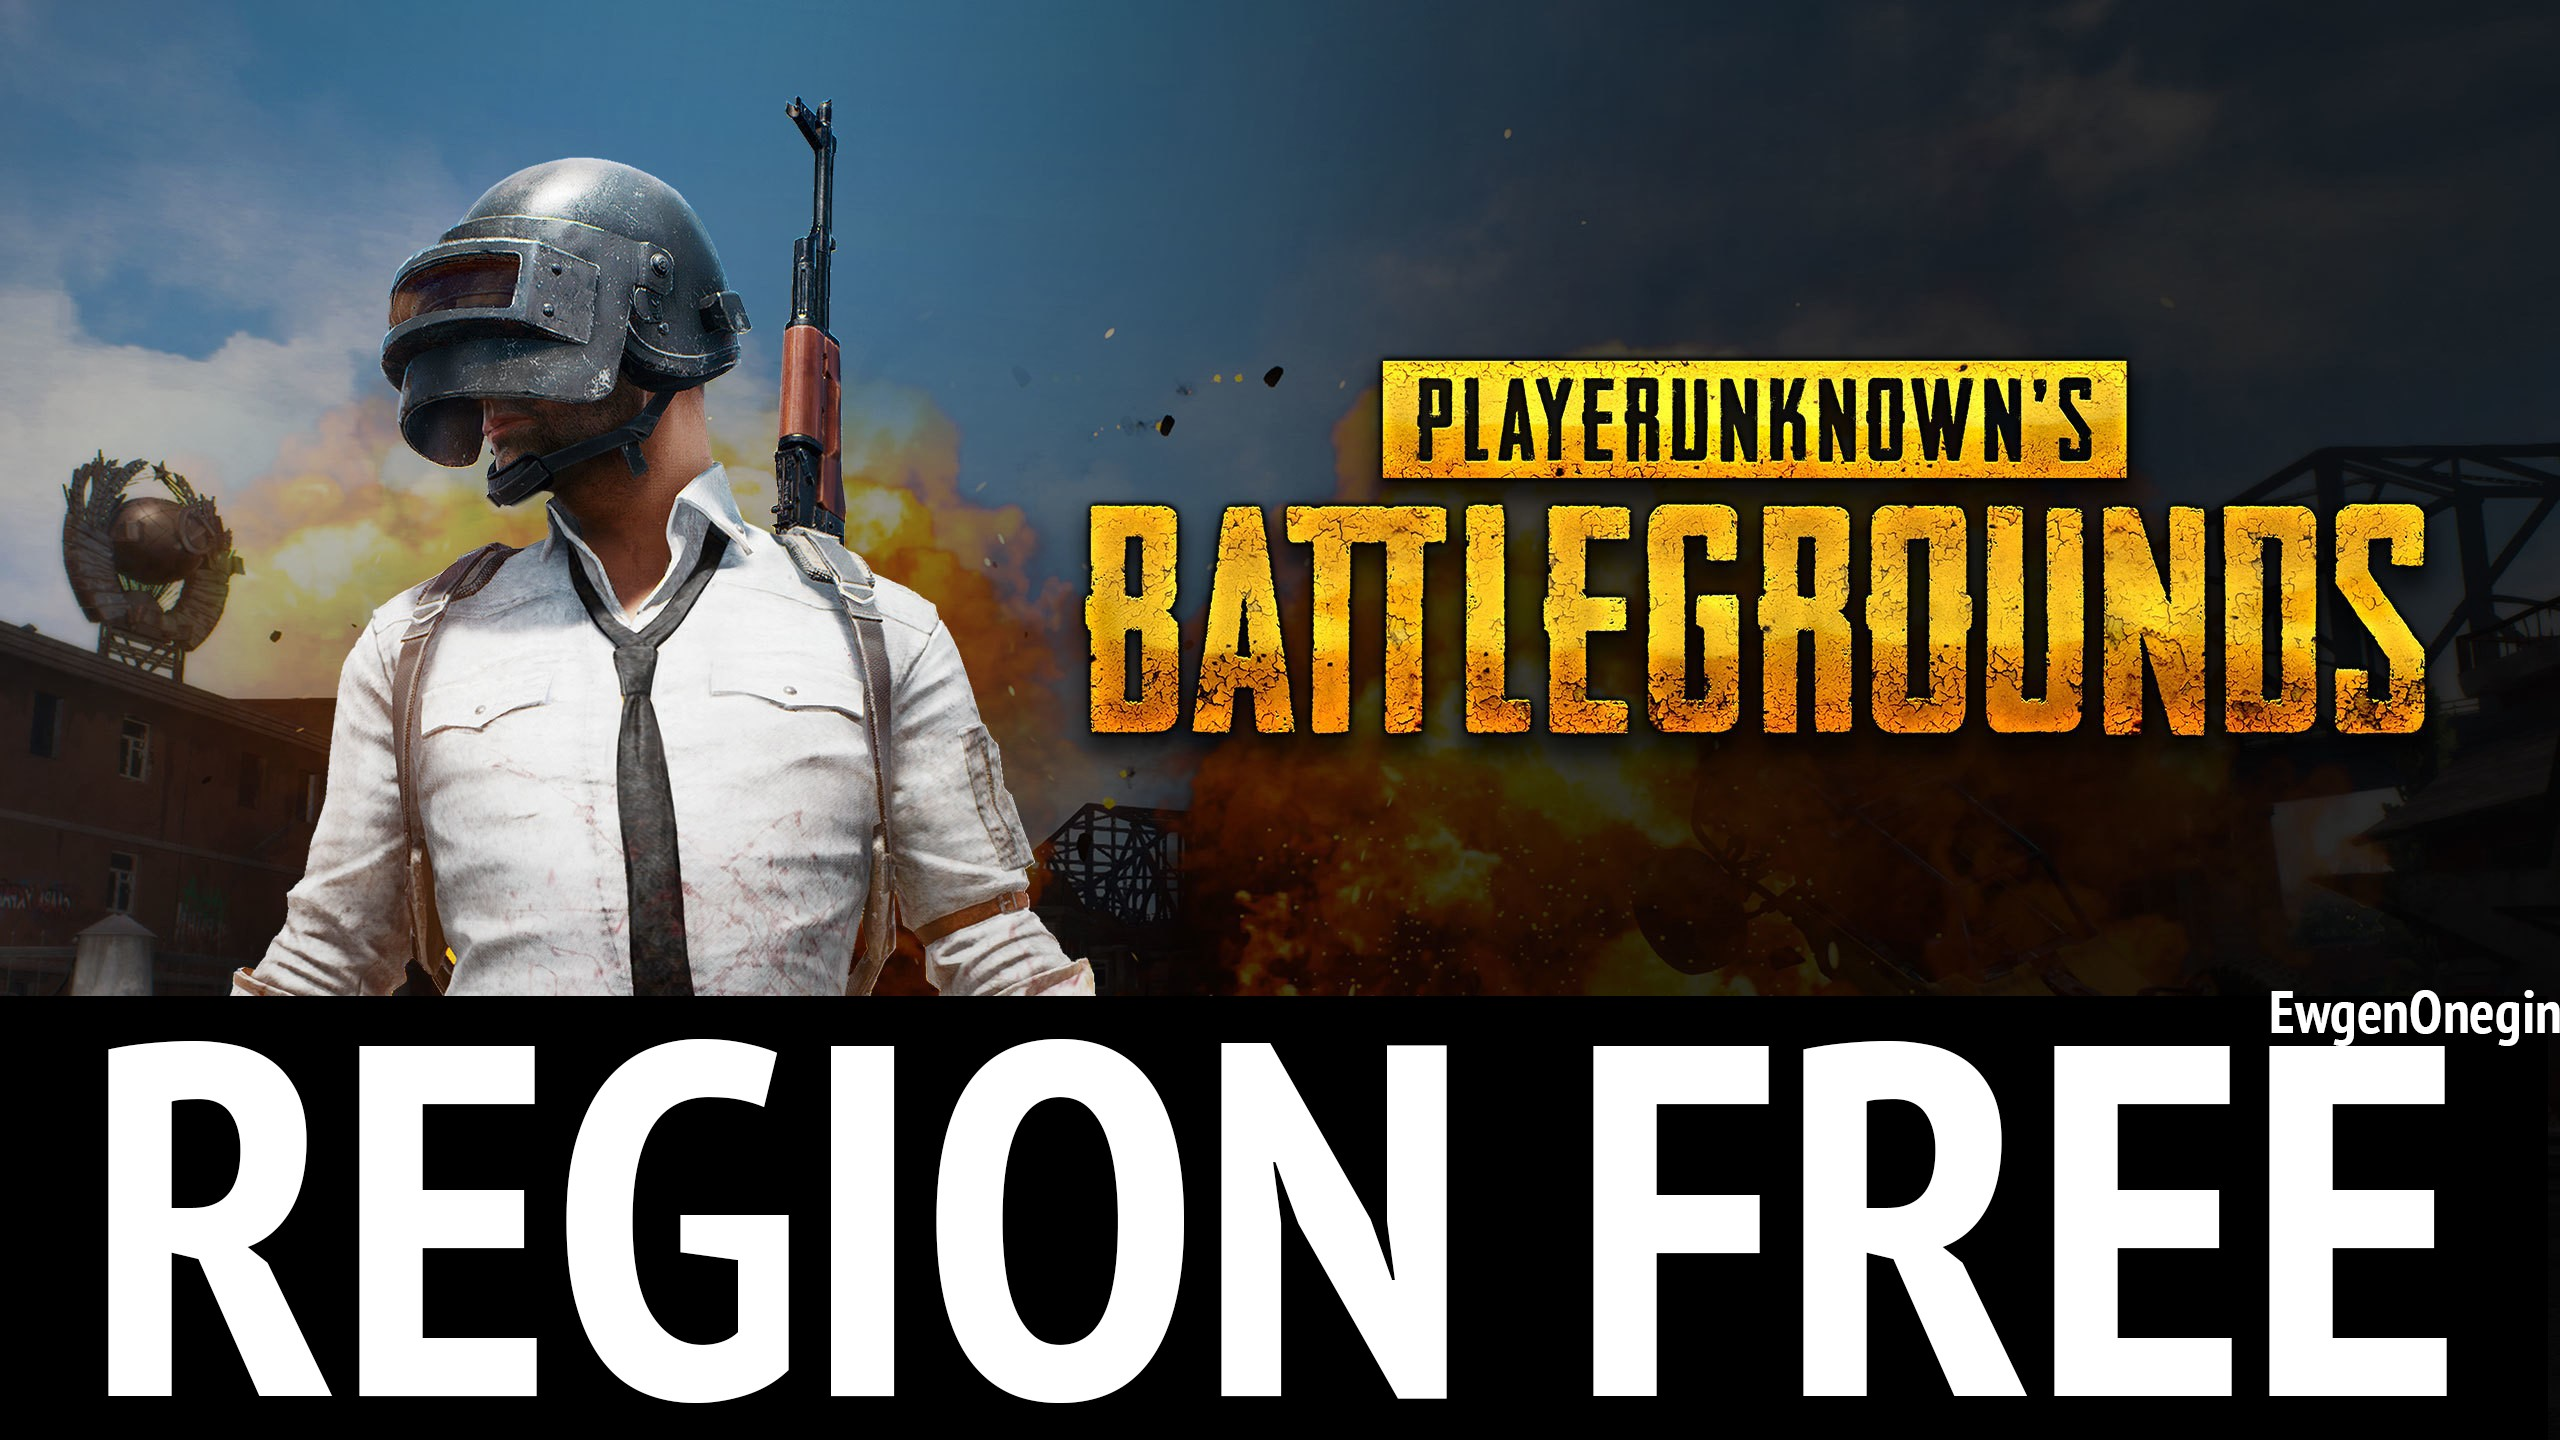 PLAYERUNKNOWNS BATTLEGROUNDS Free Region (New account)